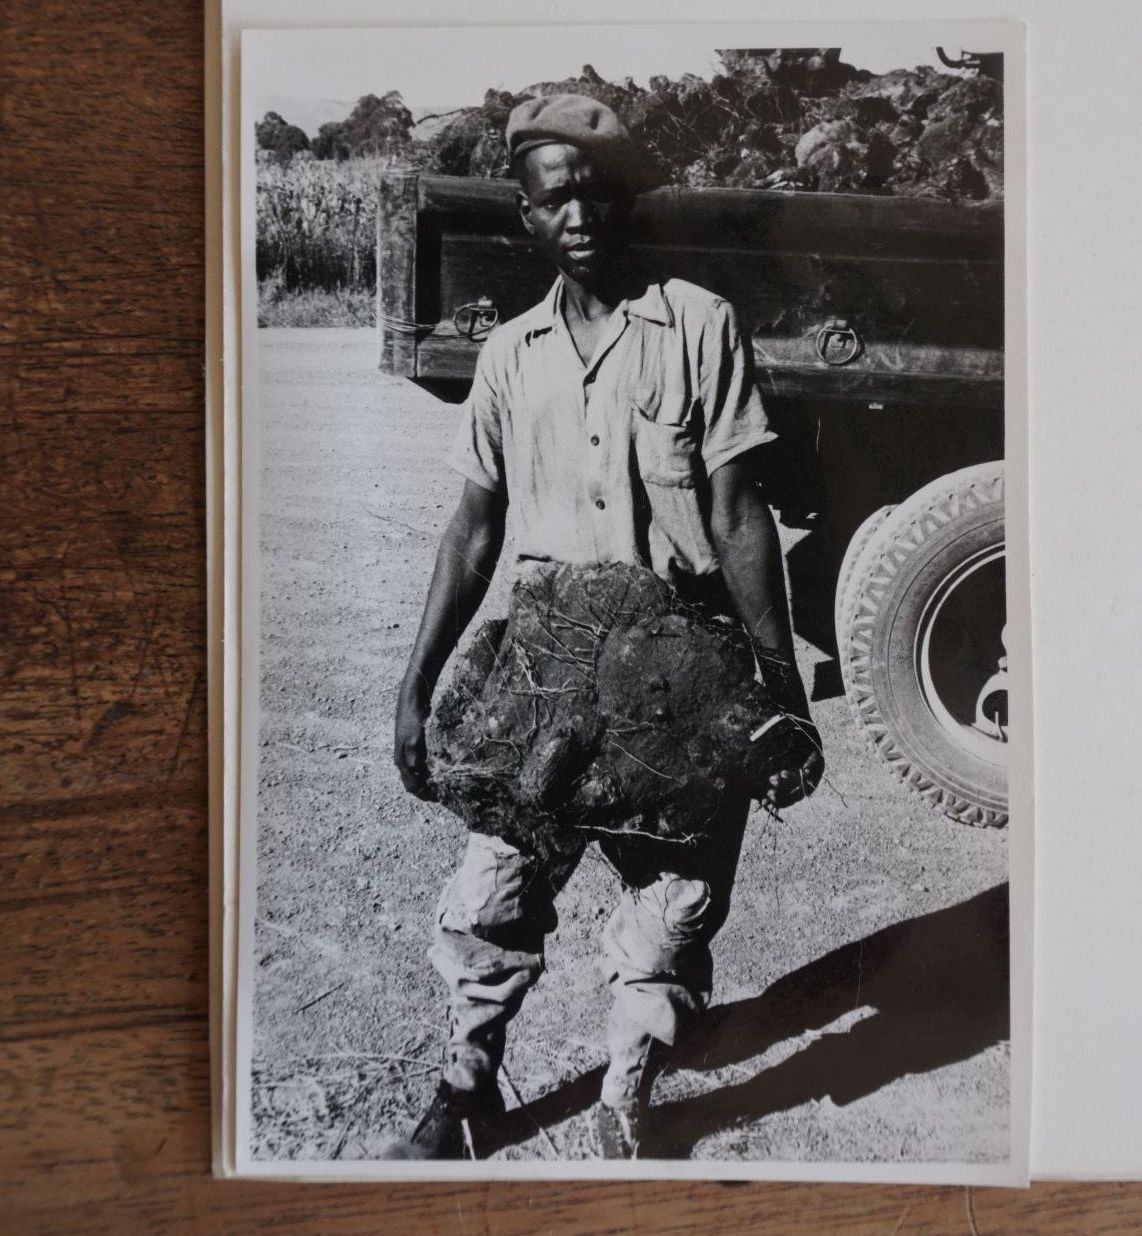 Image found in The South African National Biodiversity Institute herbarium - caption reads 'Commercial exploitation of Diascorea sylvatica, Eastern Transvaal, c.1958'